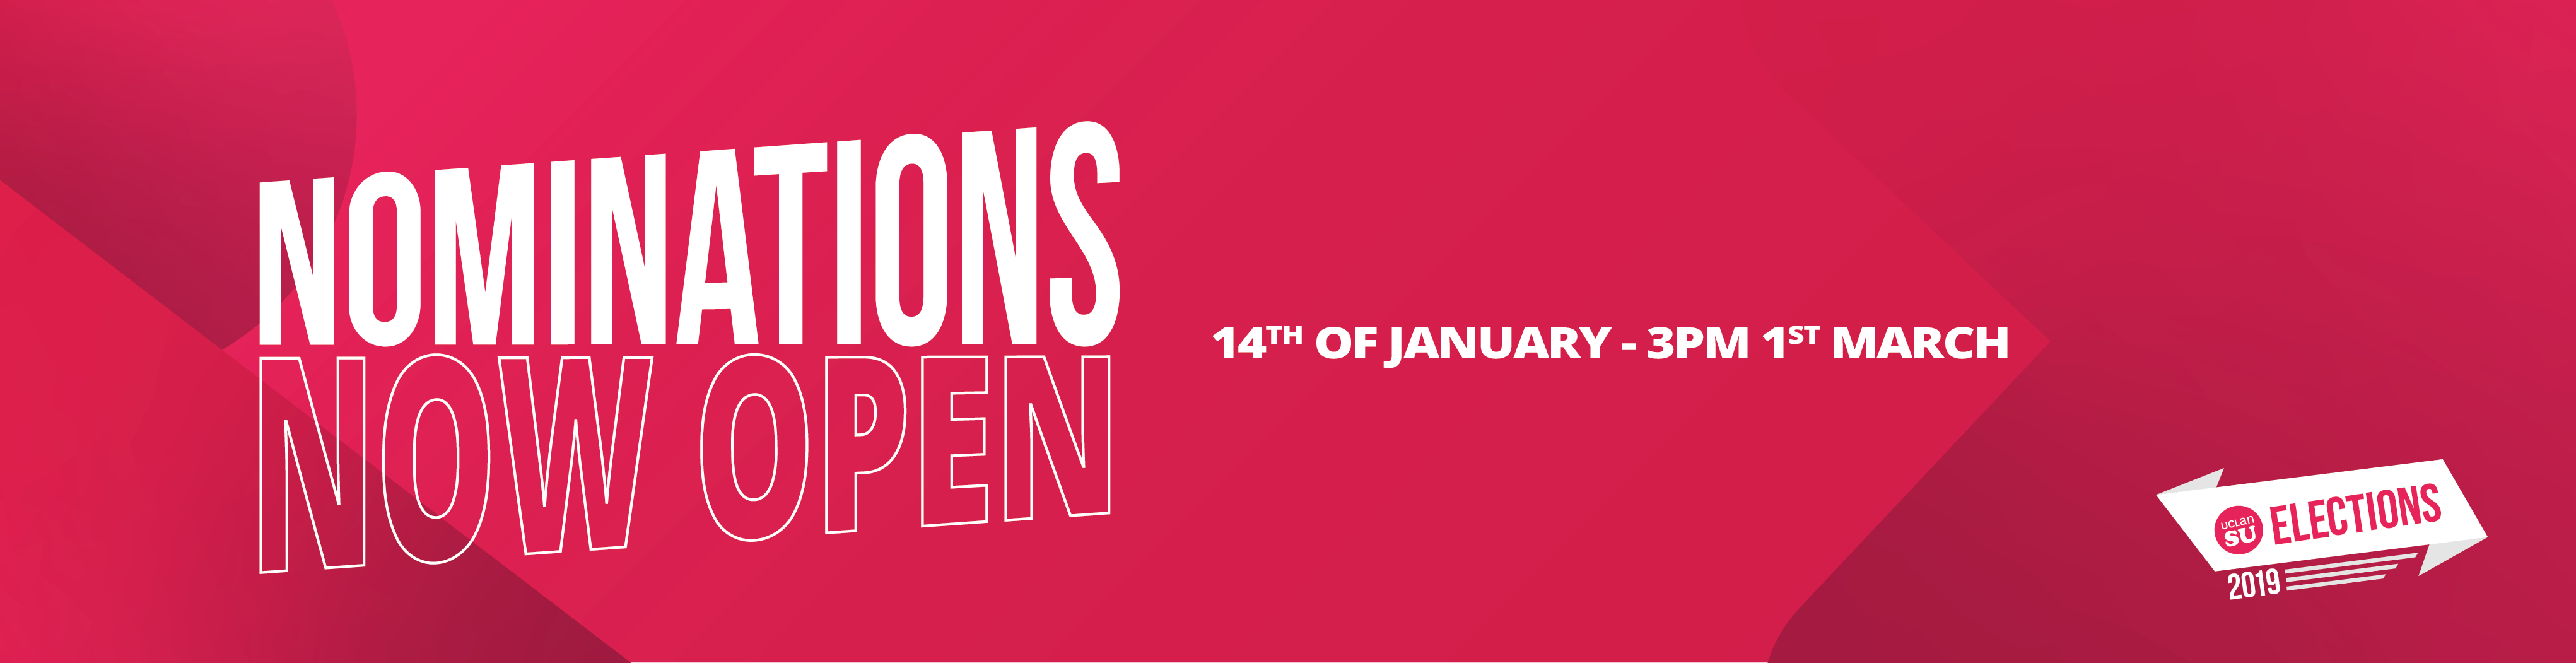 UCLan SU Elections 2019 now open